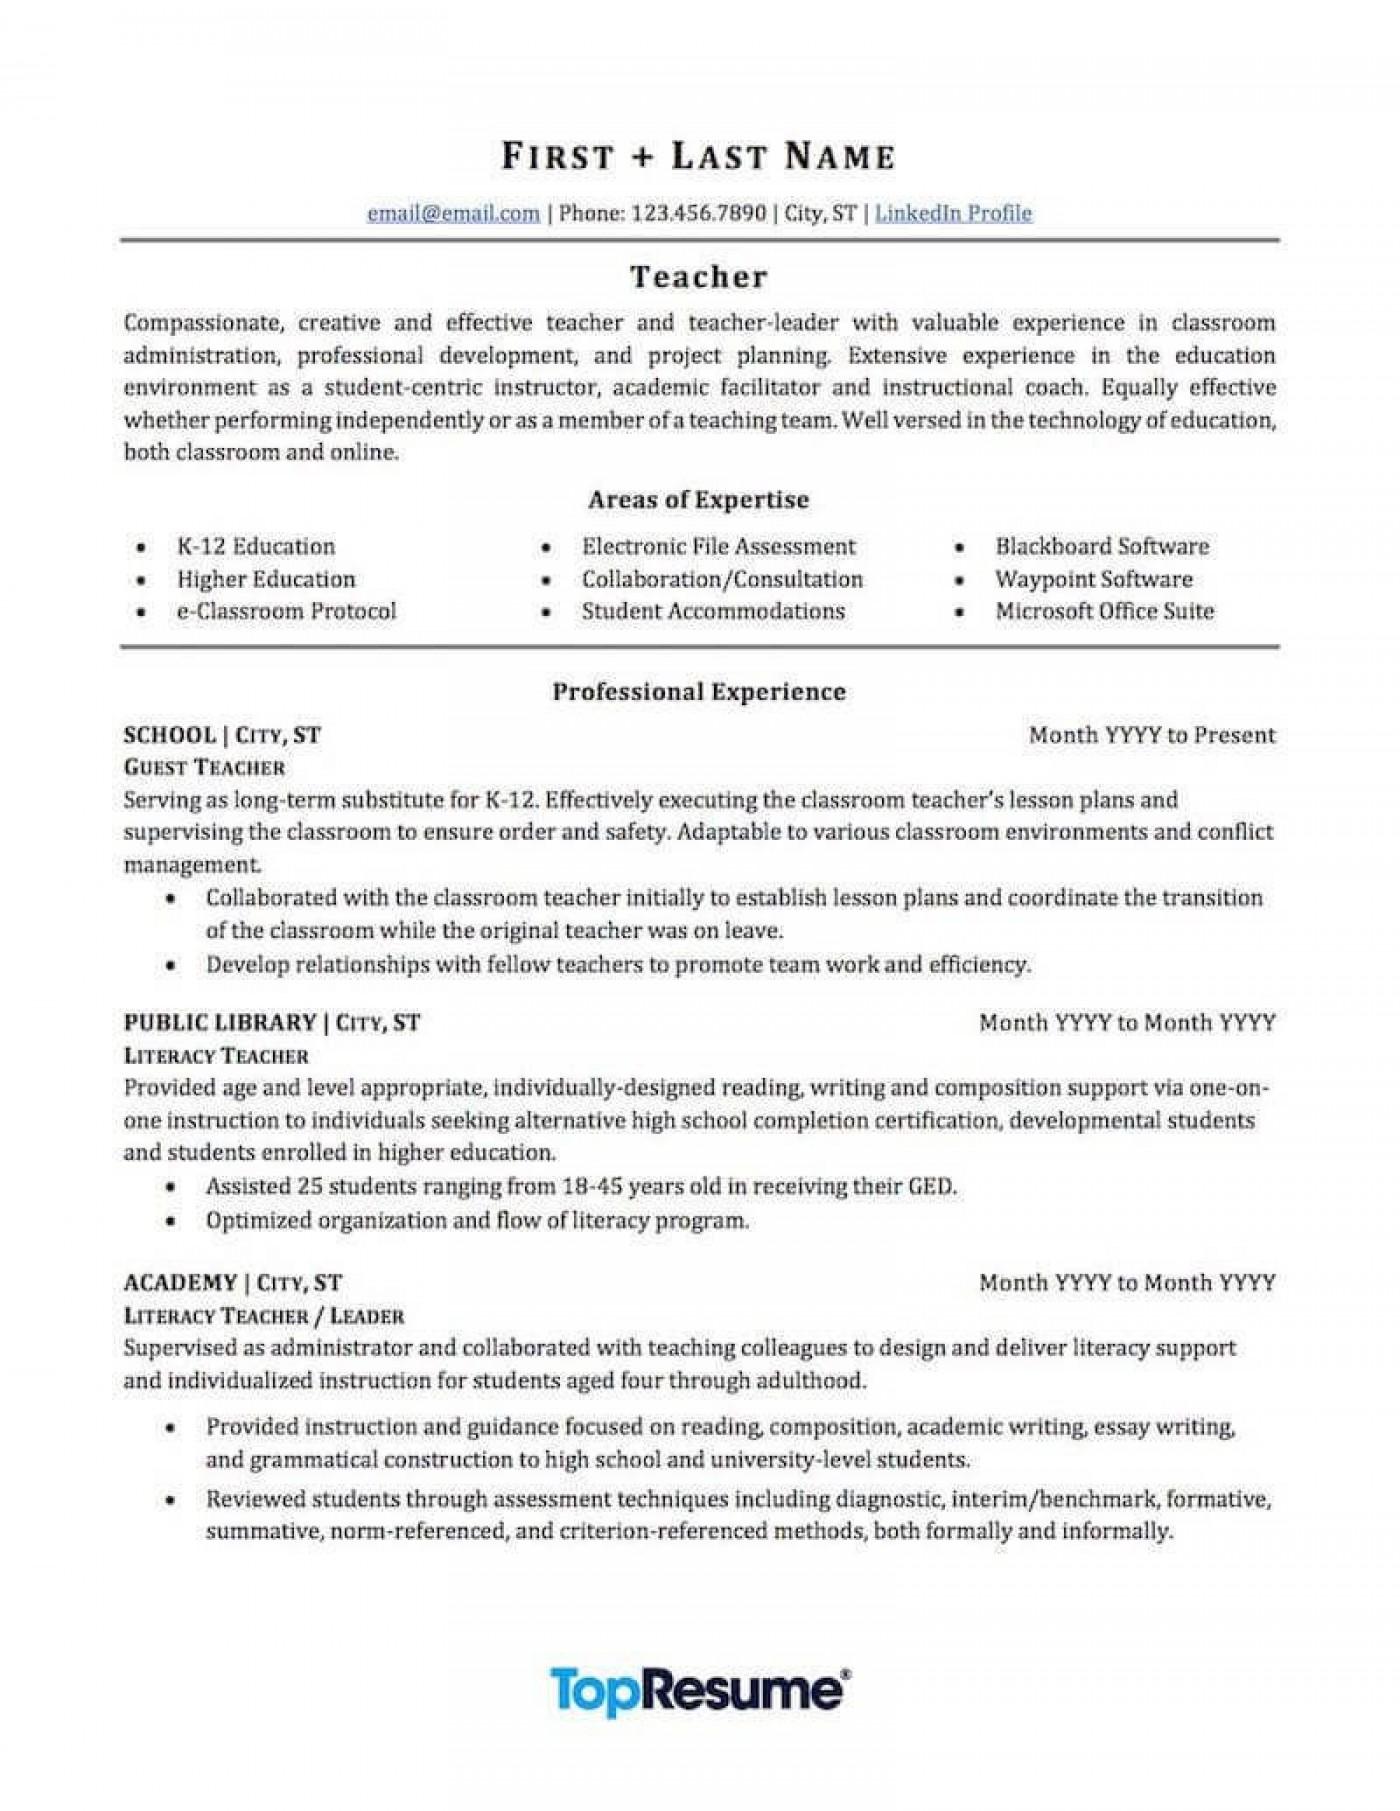 005 Awful Good Resume For Teaching Job High Resolution  Sample With Experience Pdf Fresher In India1400